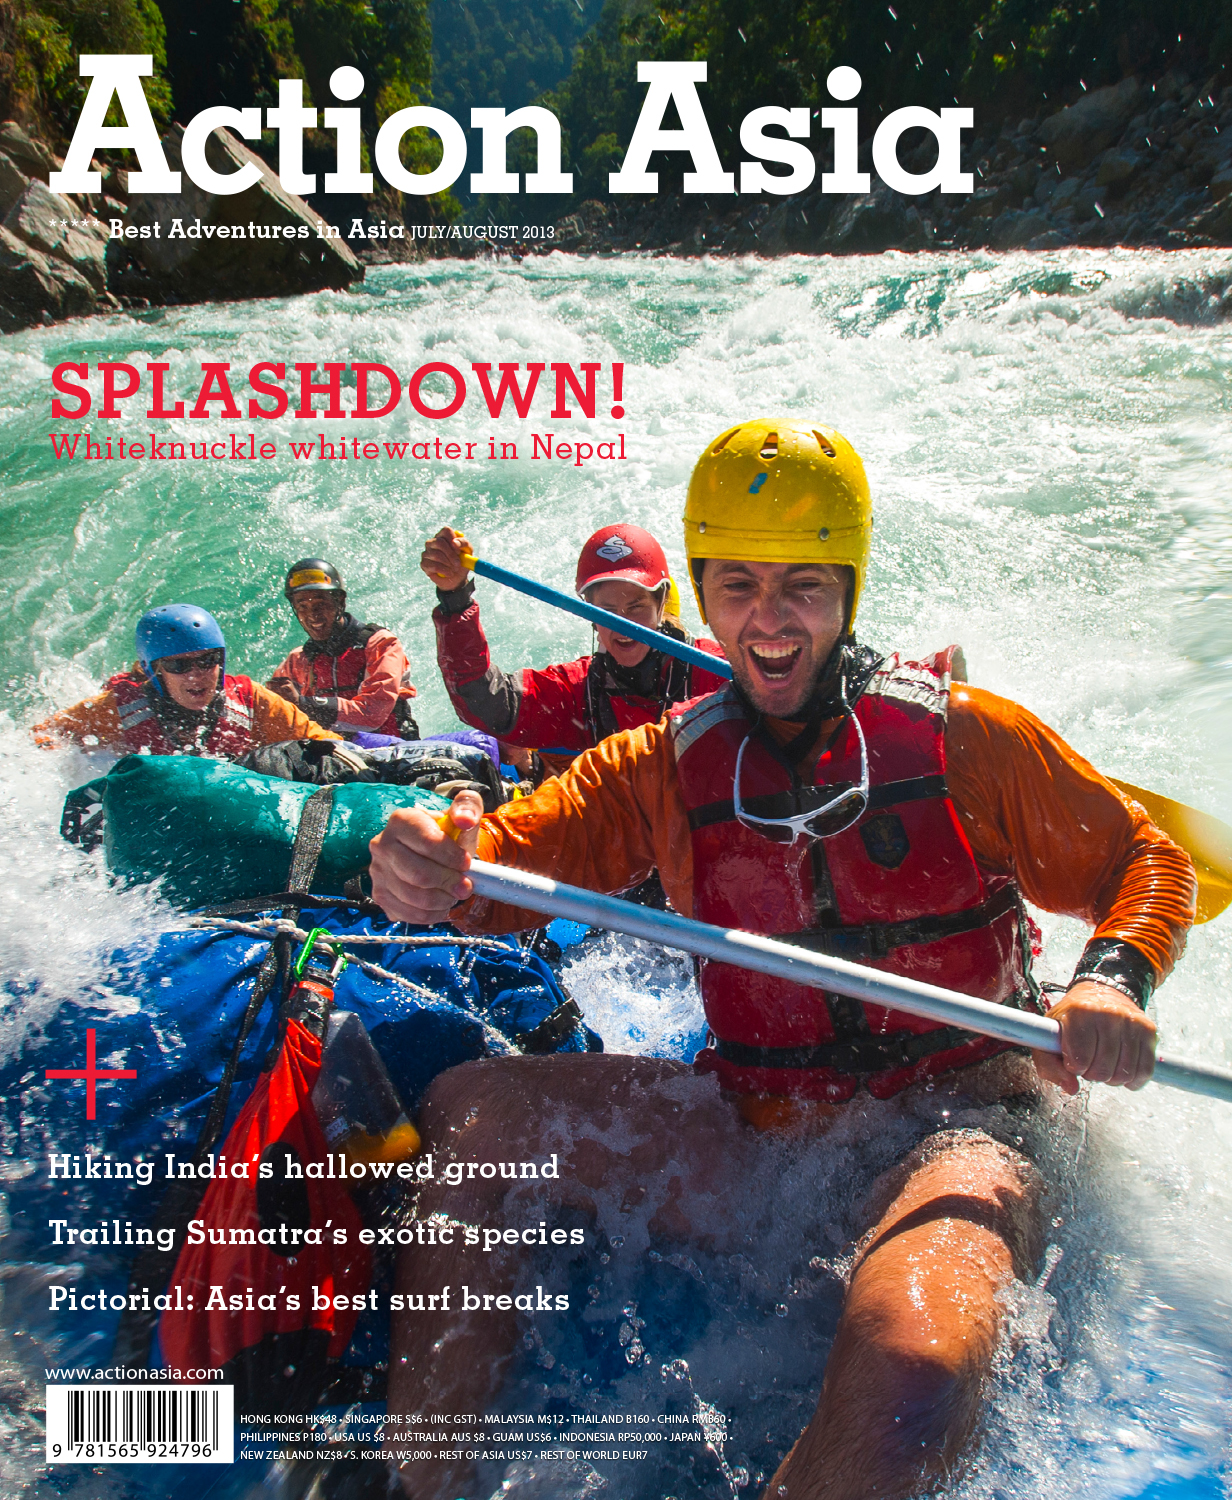 Action Asia cover July/August 2013